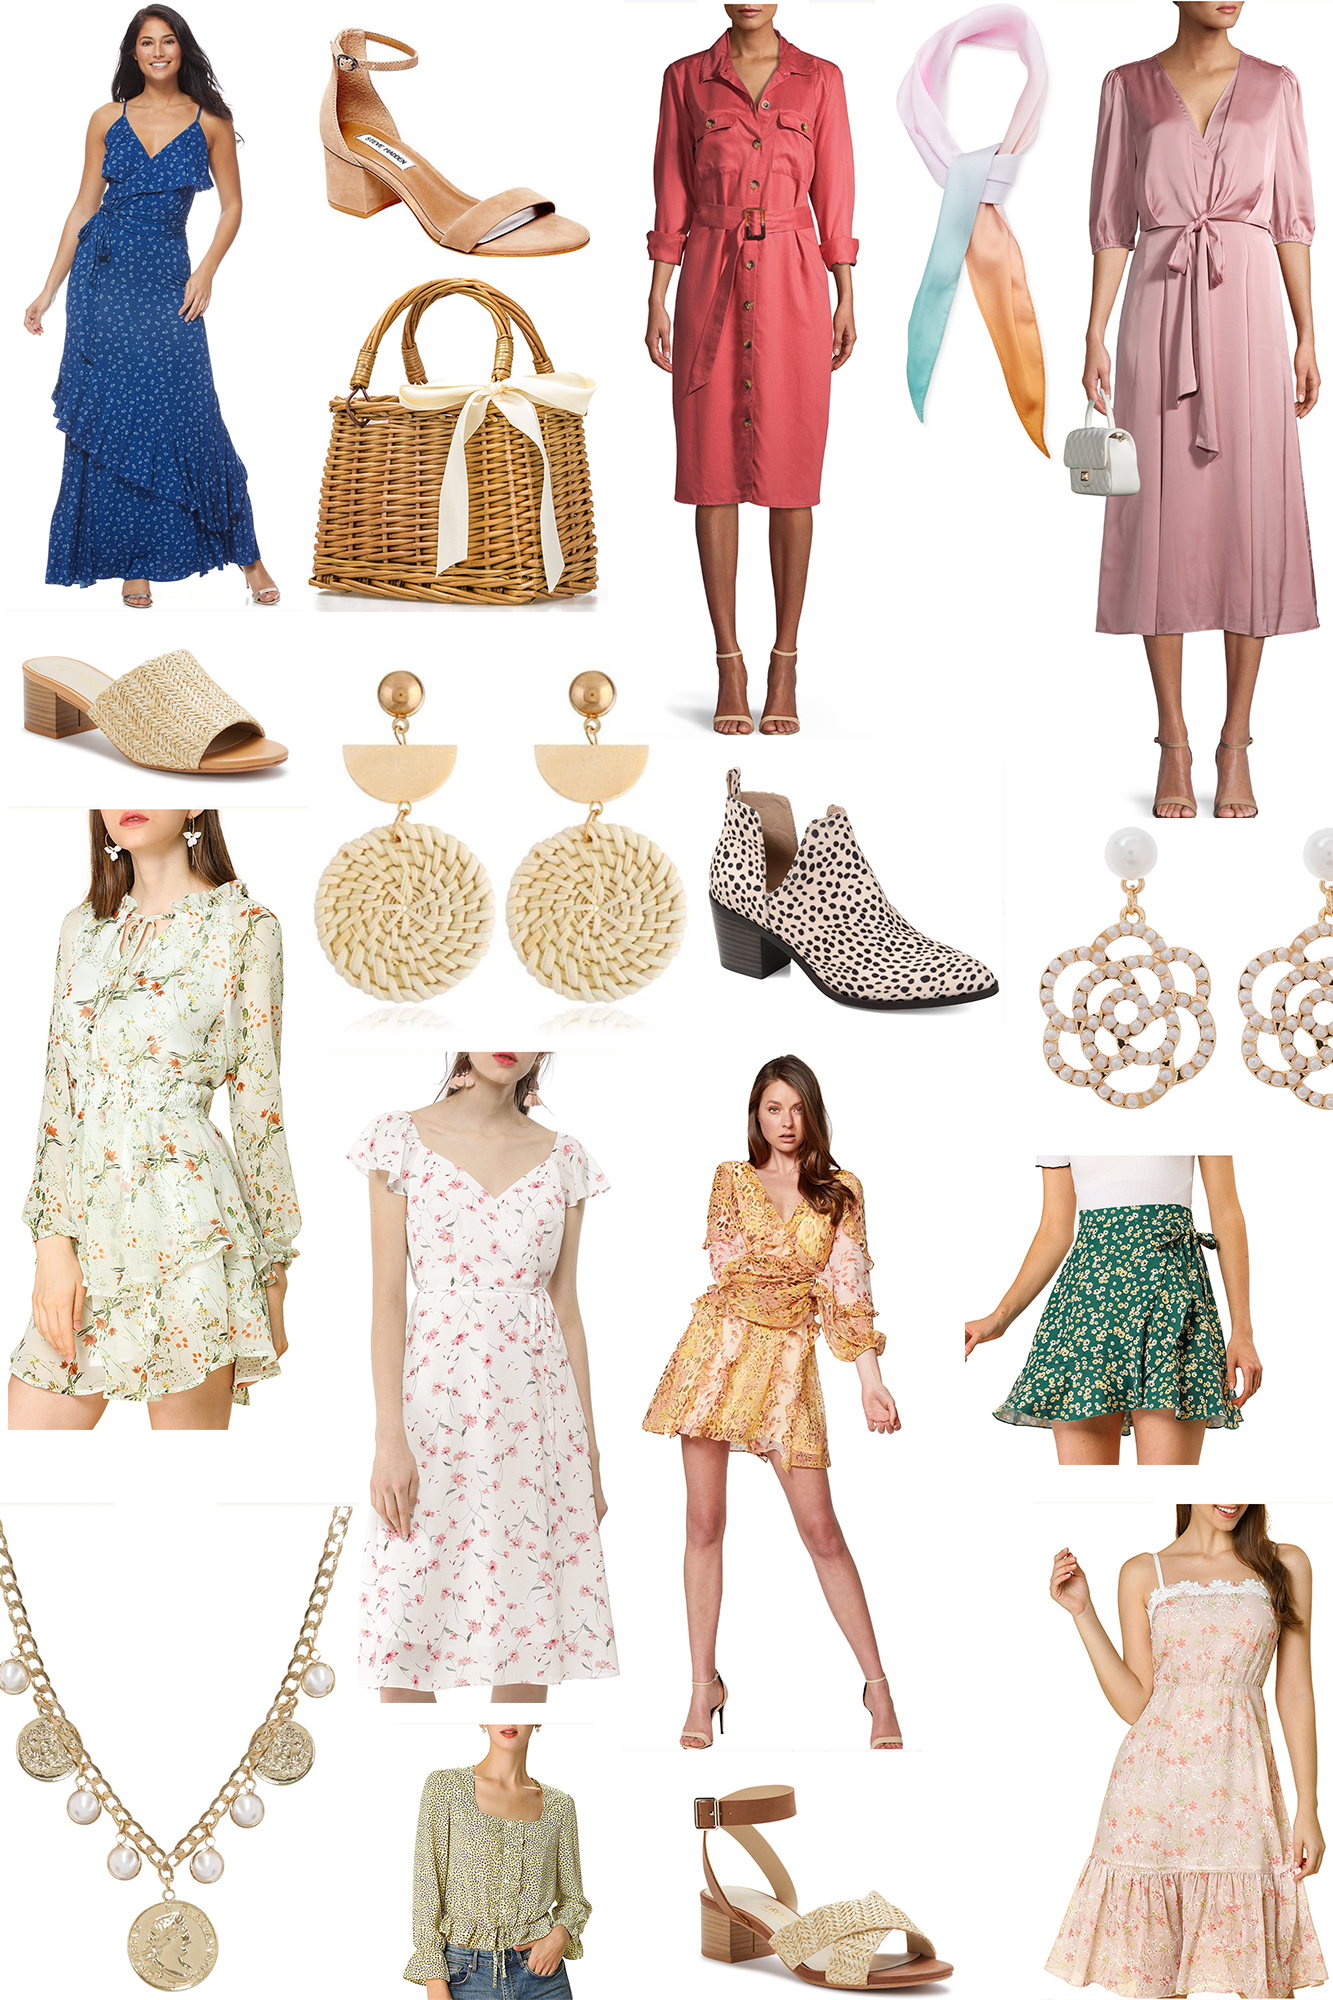 Floral & Feminine Spring Fashion Ideas - KristyWicks.com